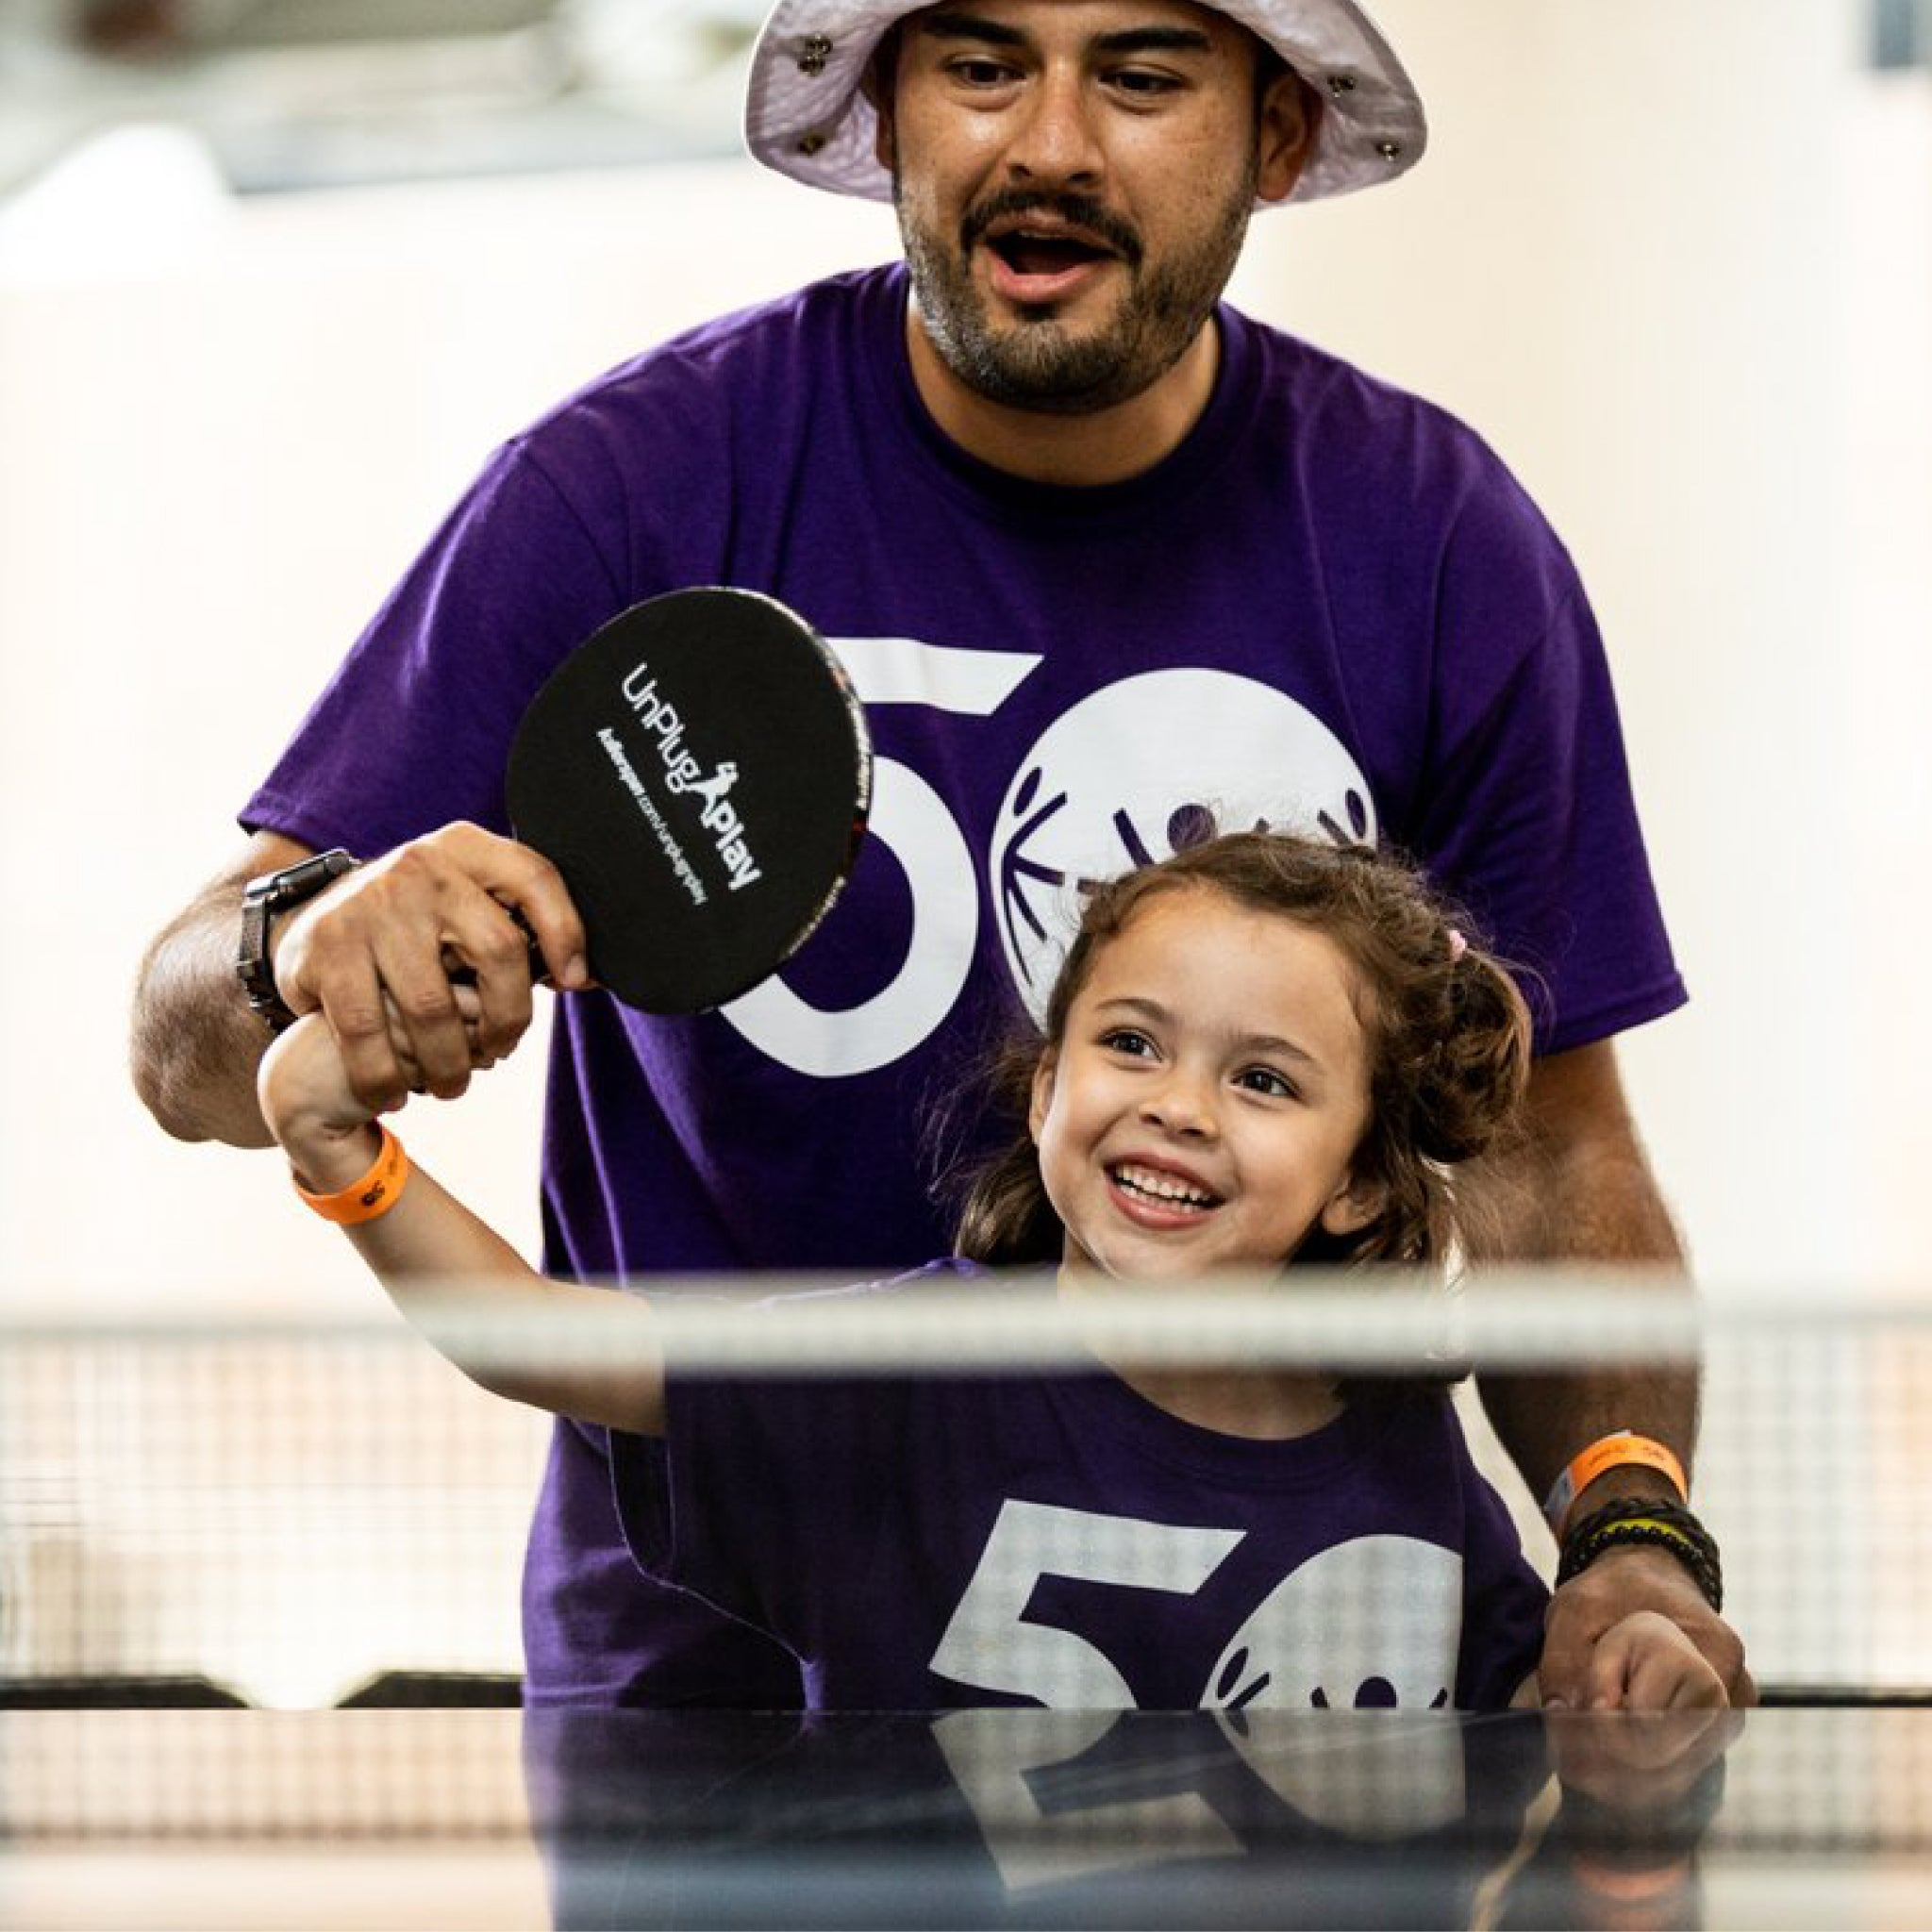 How Table Tennis Can Help Bring Families Together